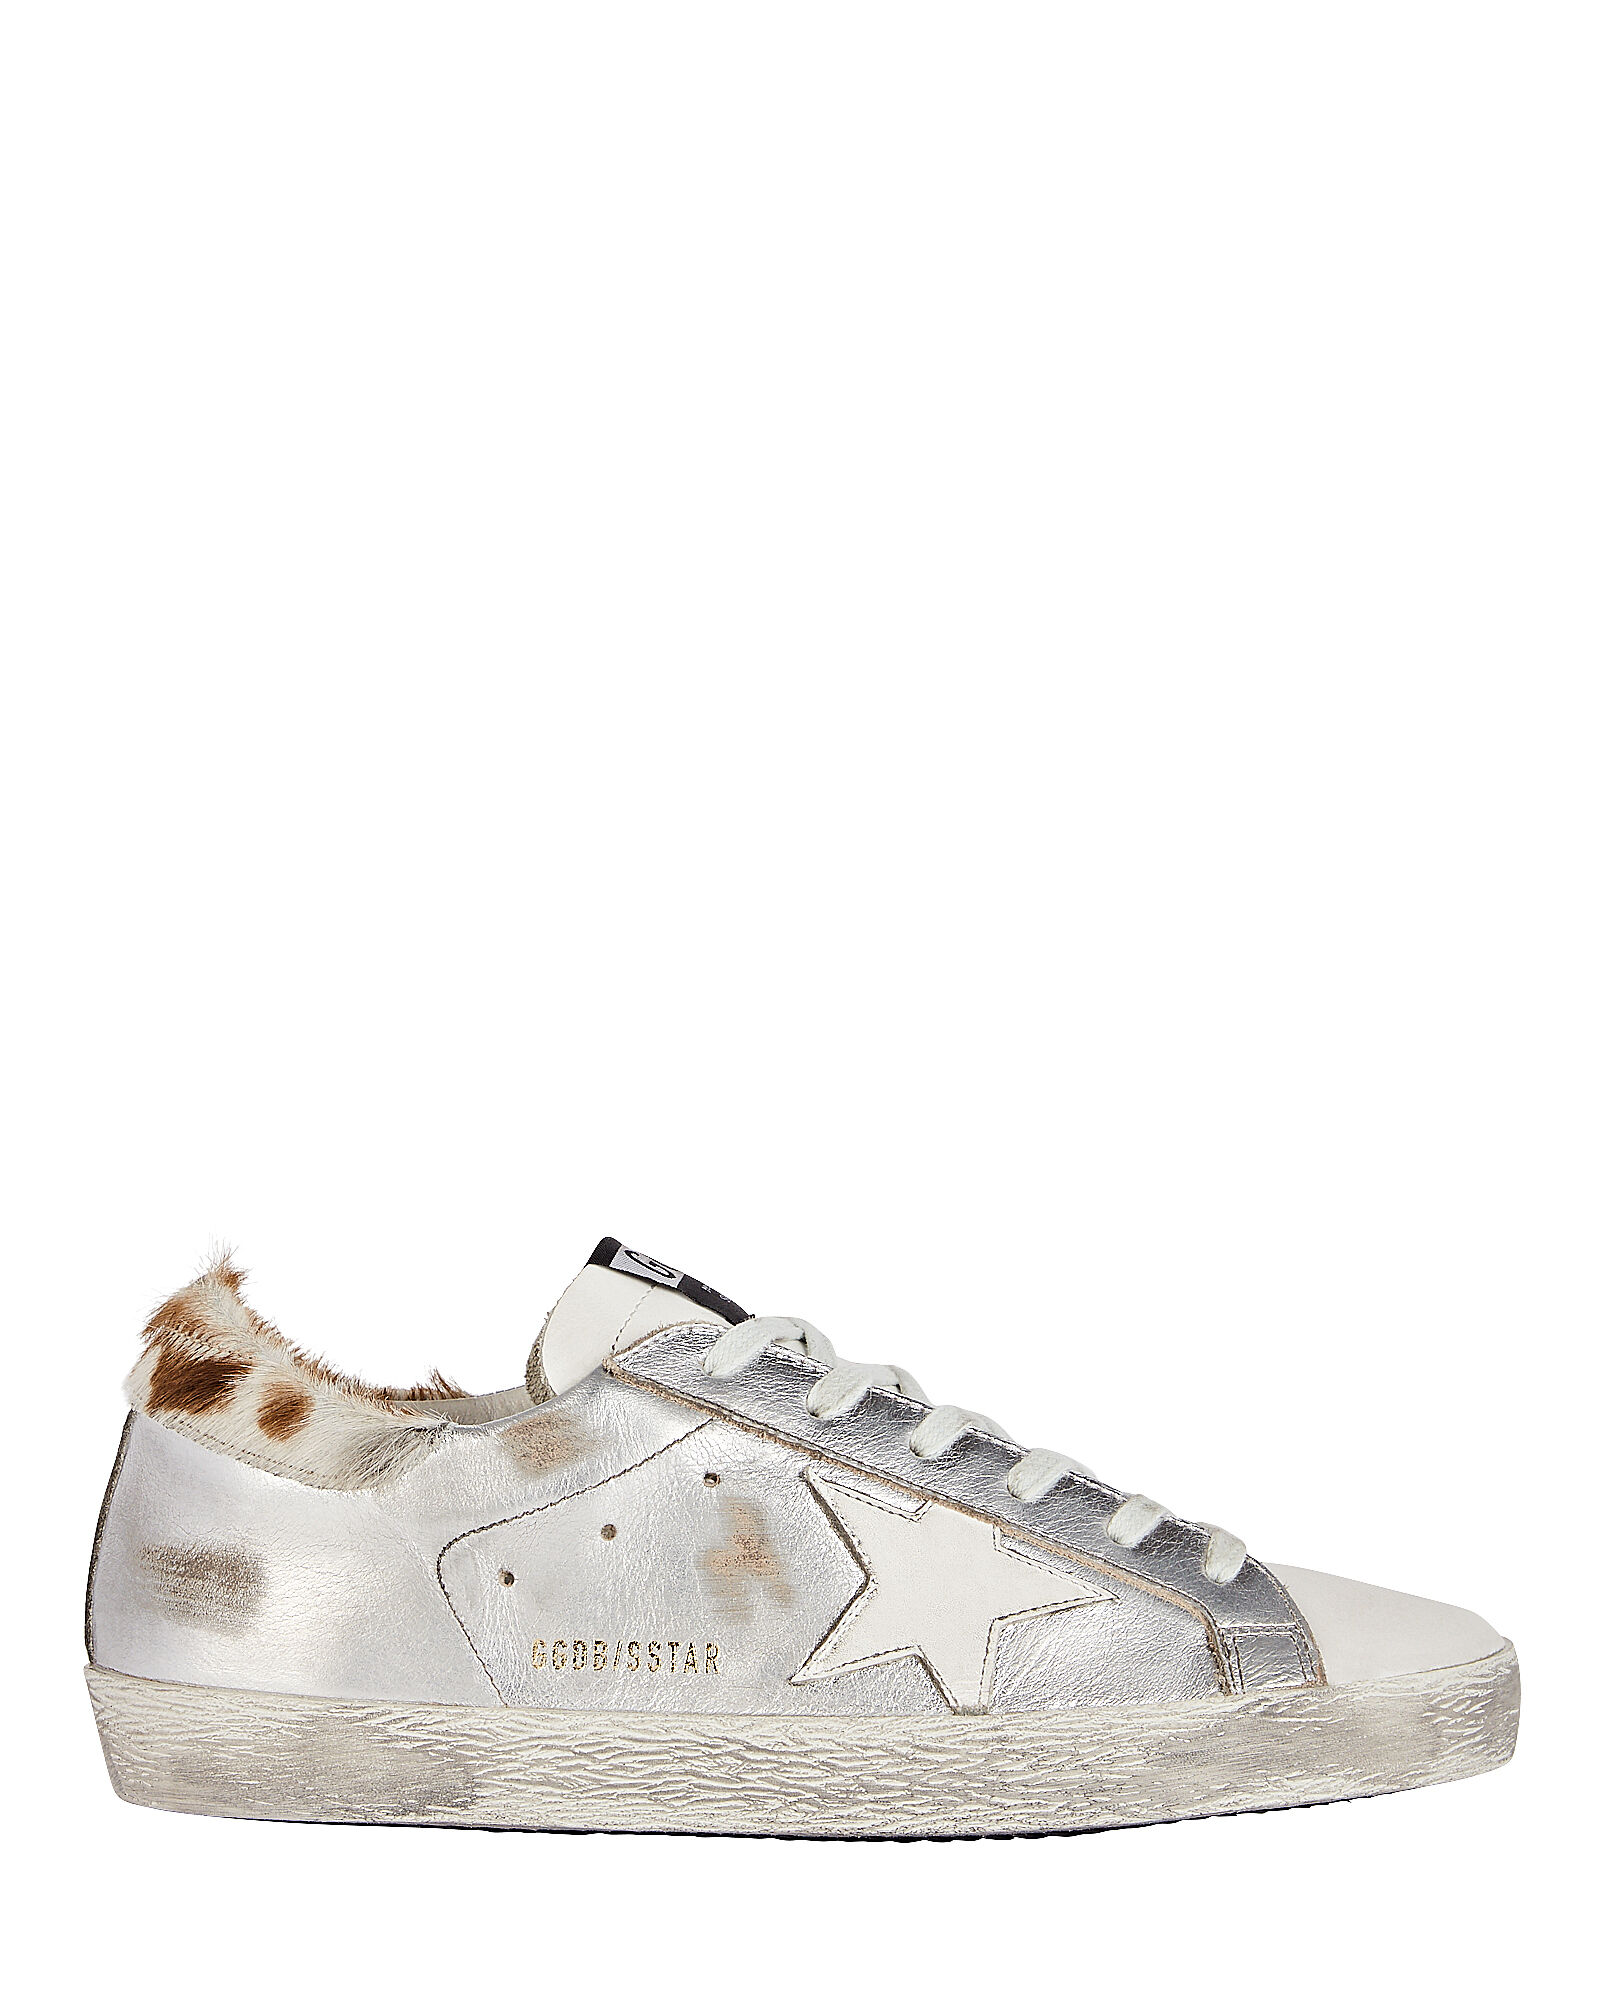 Superstar Calf Hair-Trimmed Sneakers, SILVER, hi-res